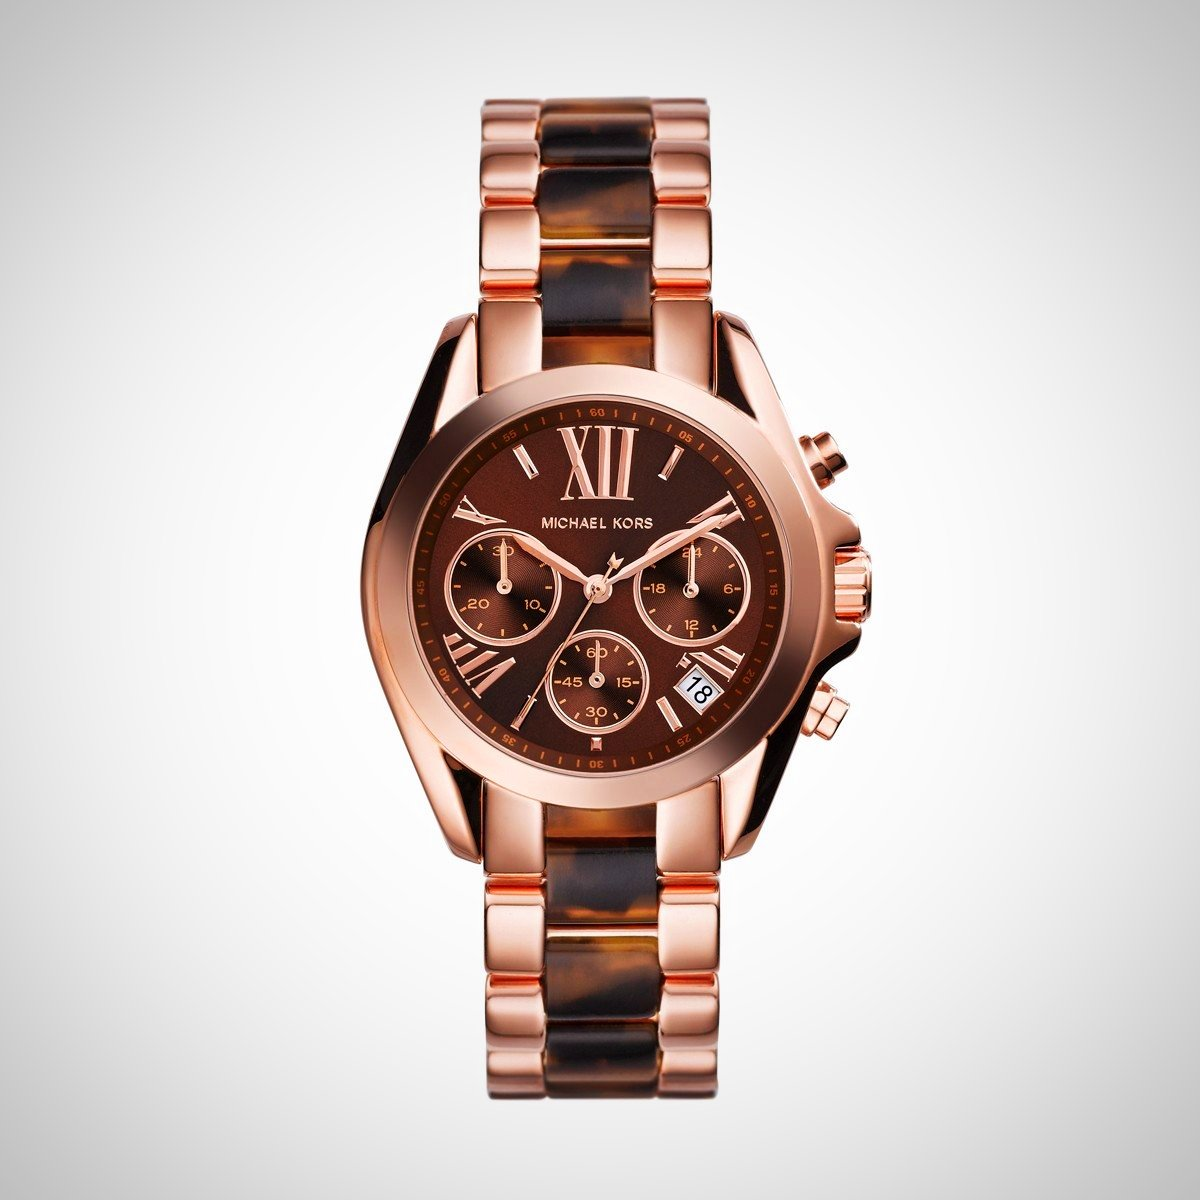 Michael Kors MK5944 Ladies Bradshaw Chronograph Watch